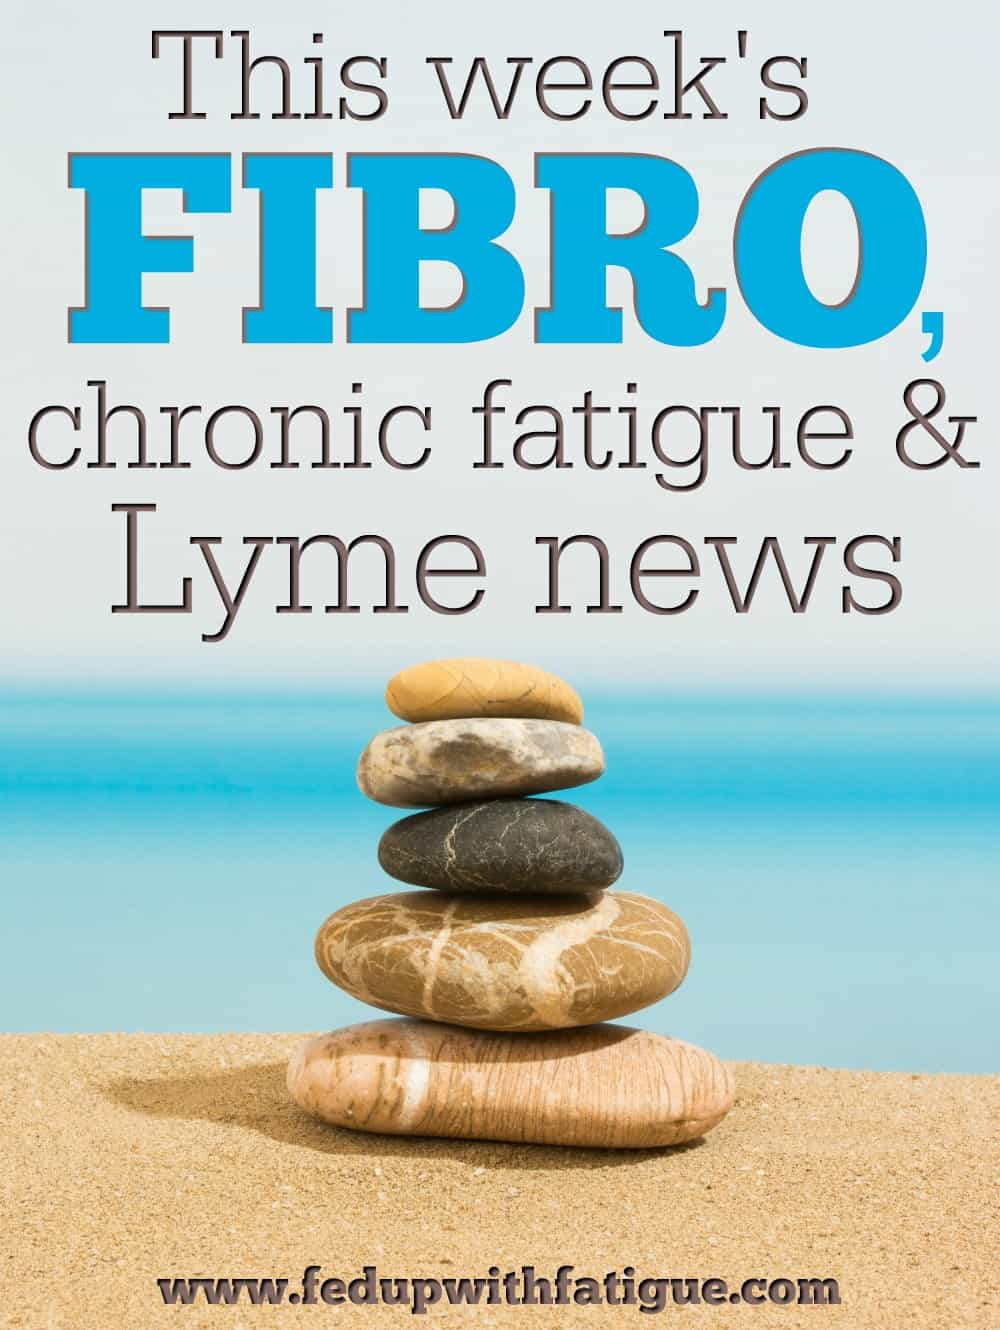 August 4, 2017 fibromyalgia, chronic fatigue and Lyme news | Fed Up with Fatigue